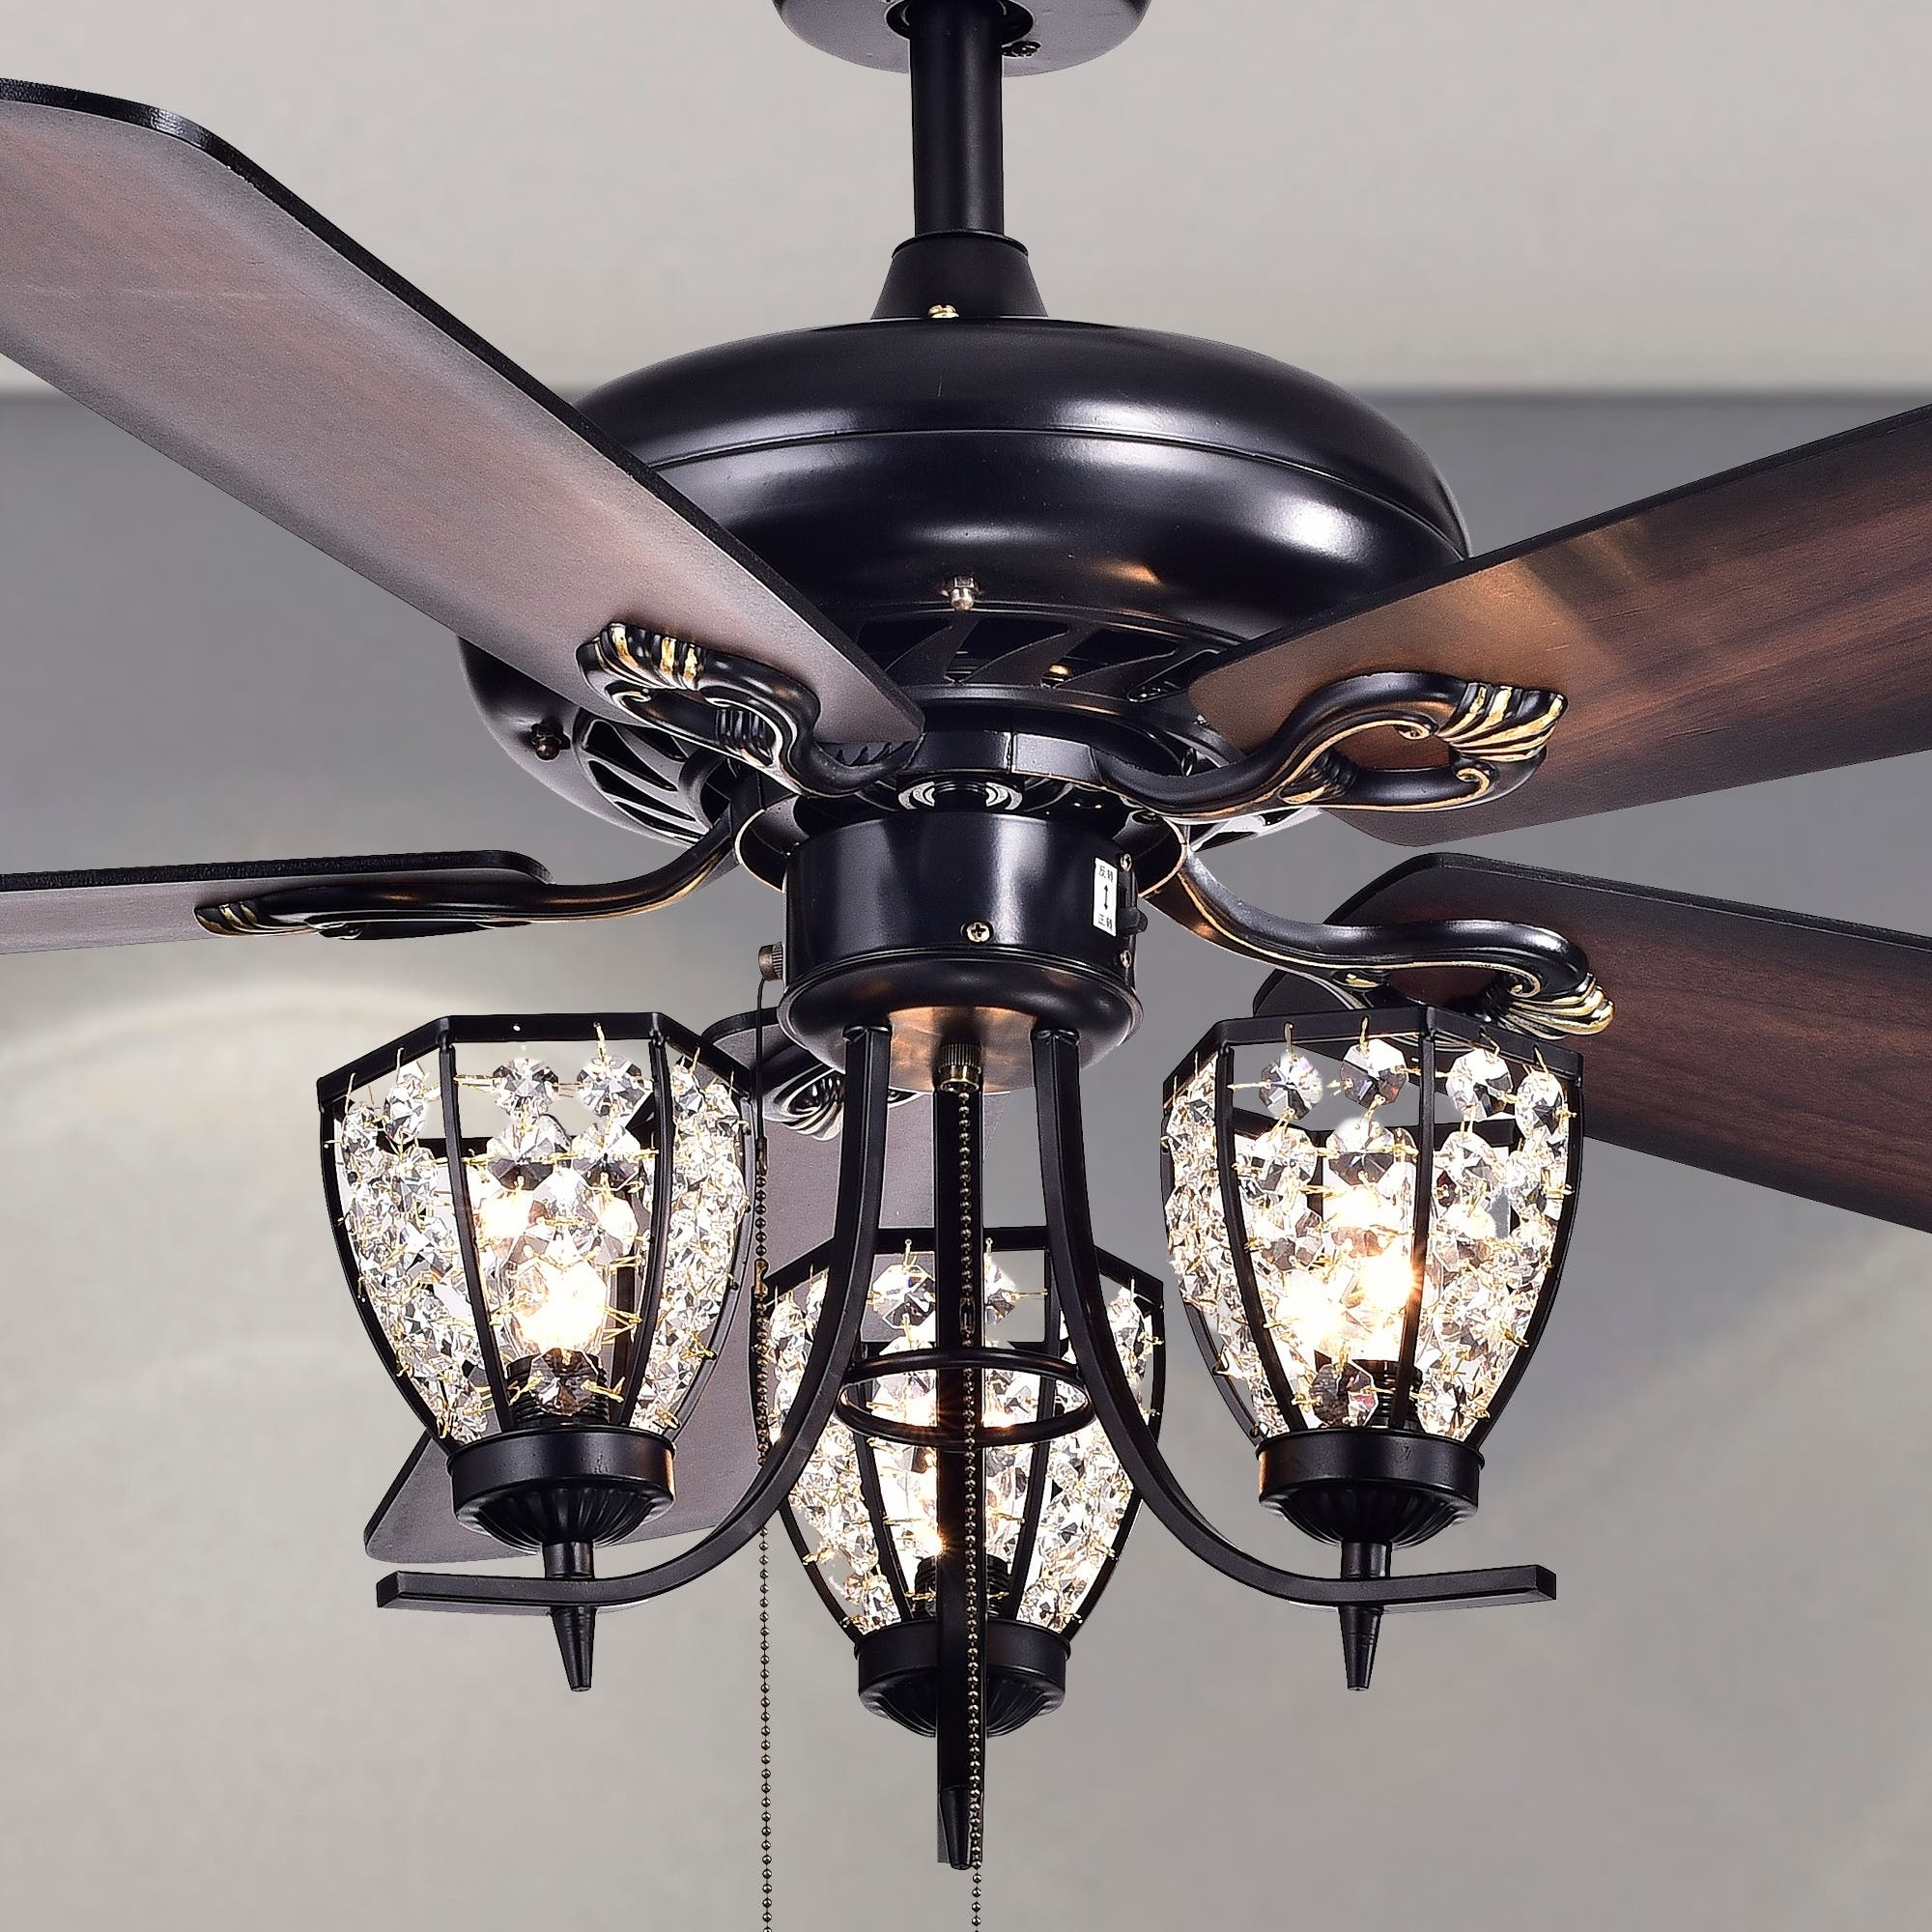 hometrends watch ceiling housing rosewood fan fans youtube blades lighted ceilings